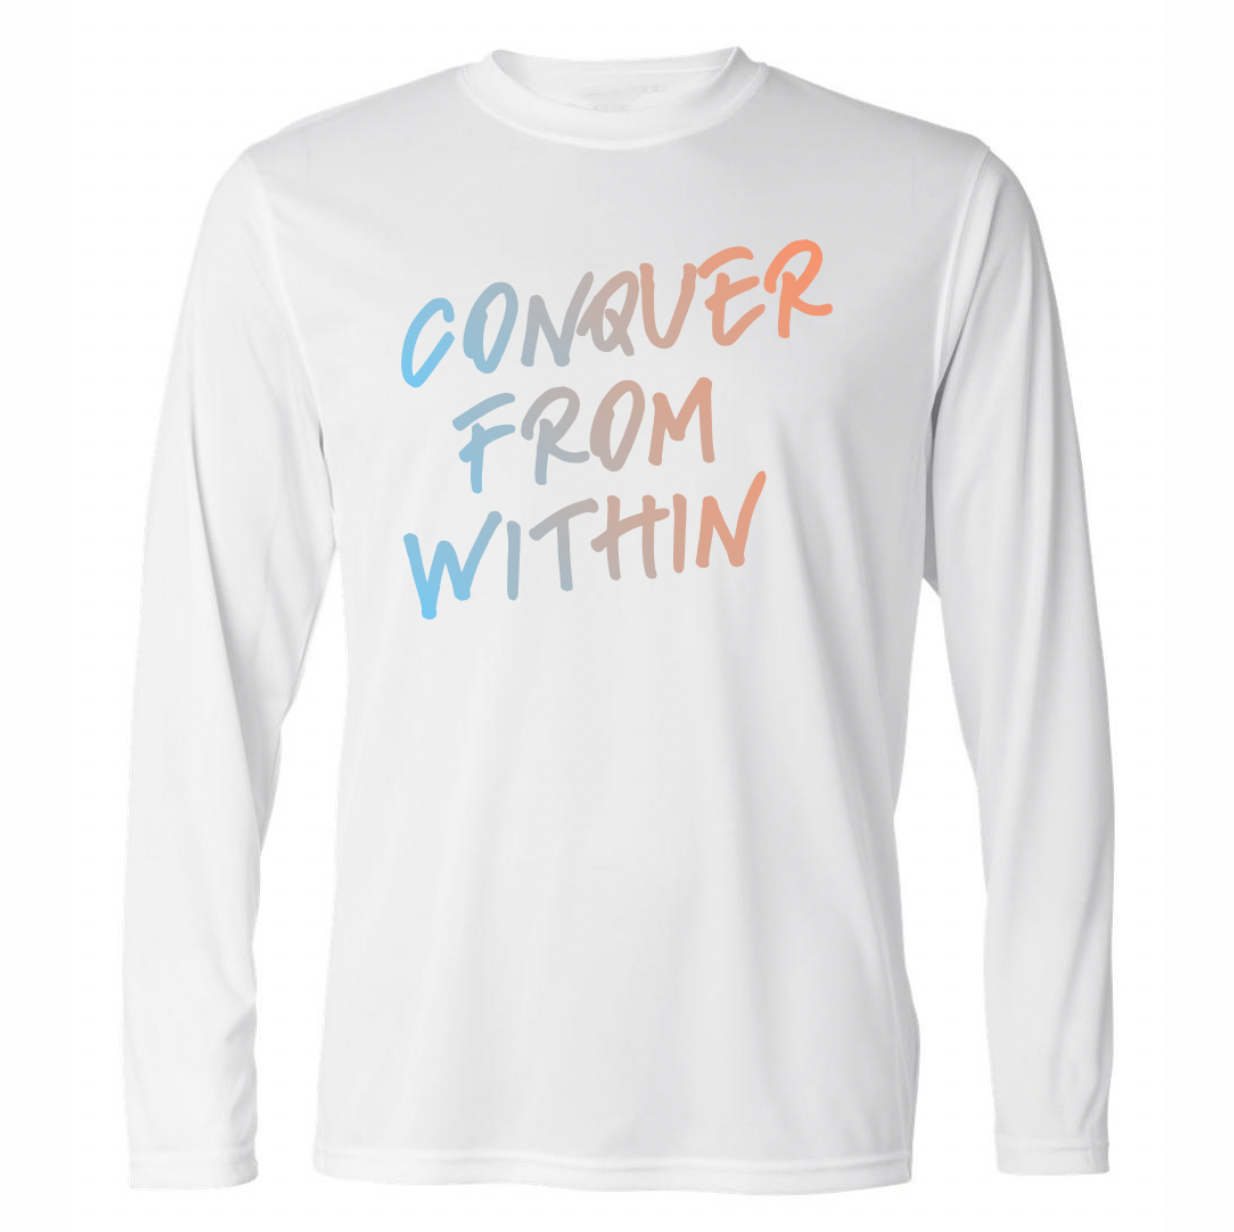 conquer from within long sleeve white performance shirt by soccergrlprobs